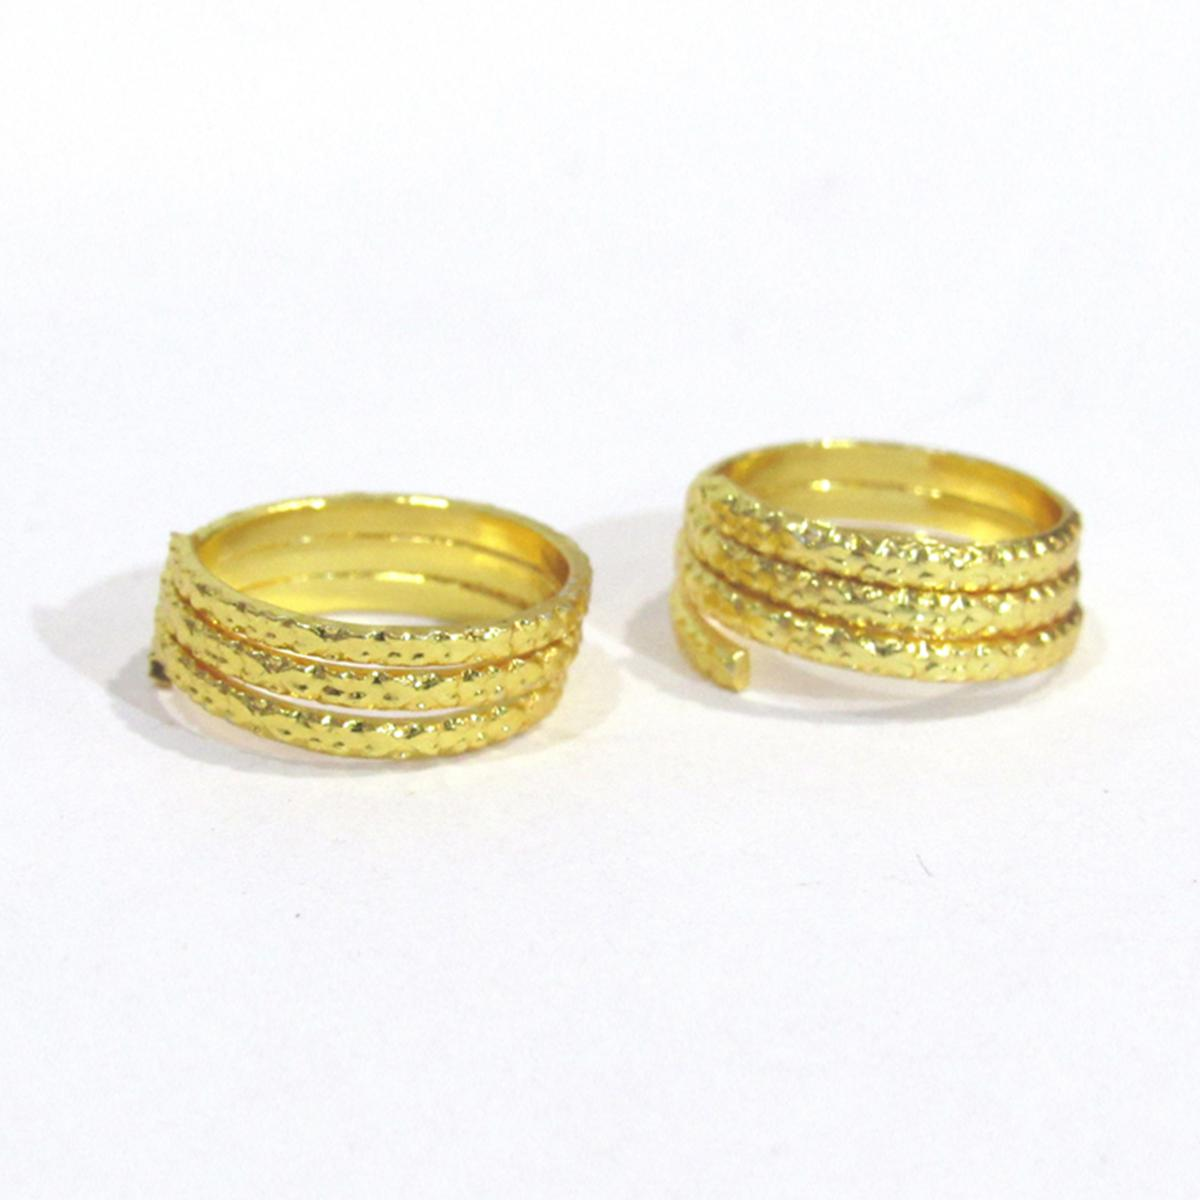 Golden Colored 3 Round Toe Rings Set Of 2